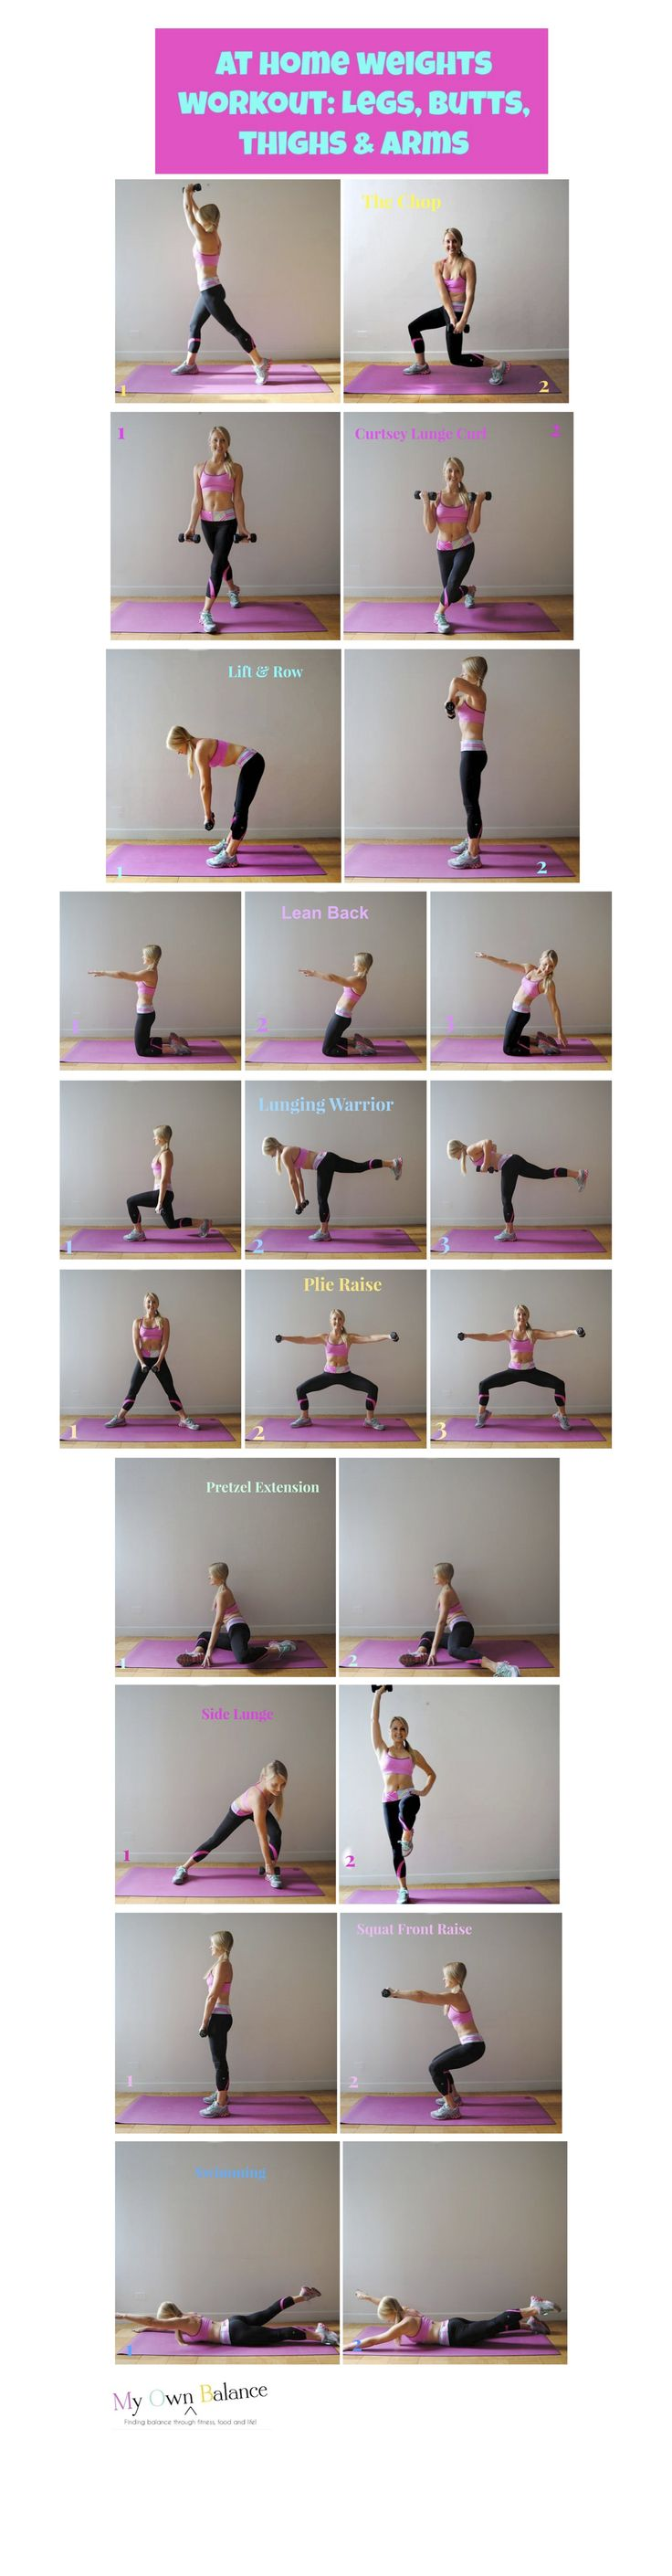 At-Home Weights Workout (total body) - My Own Balance